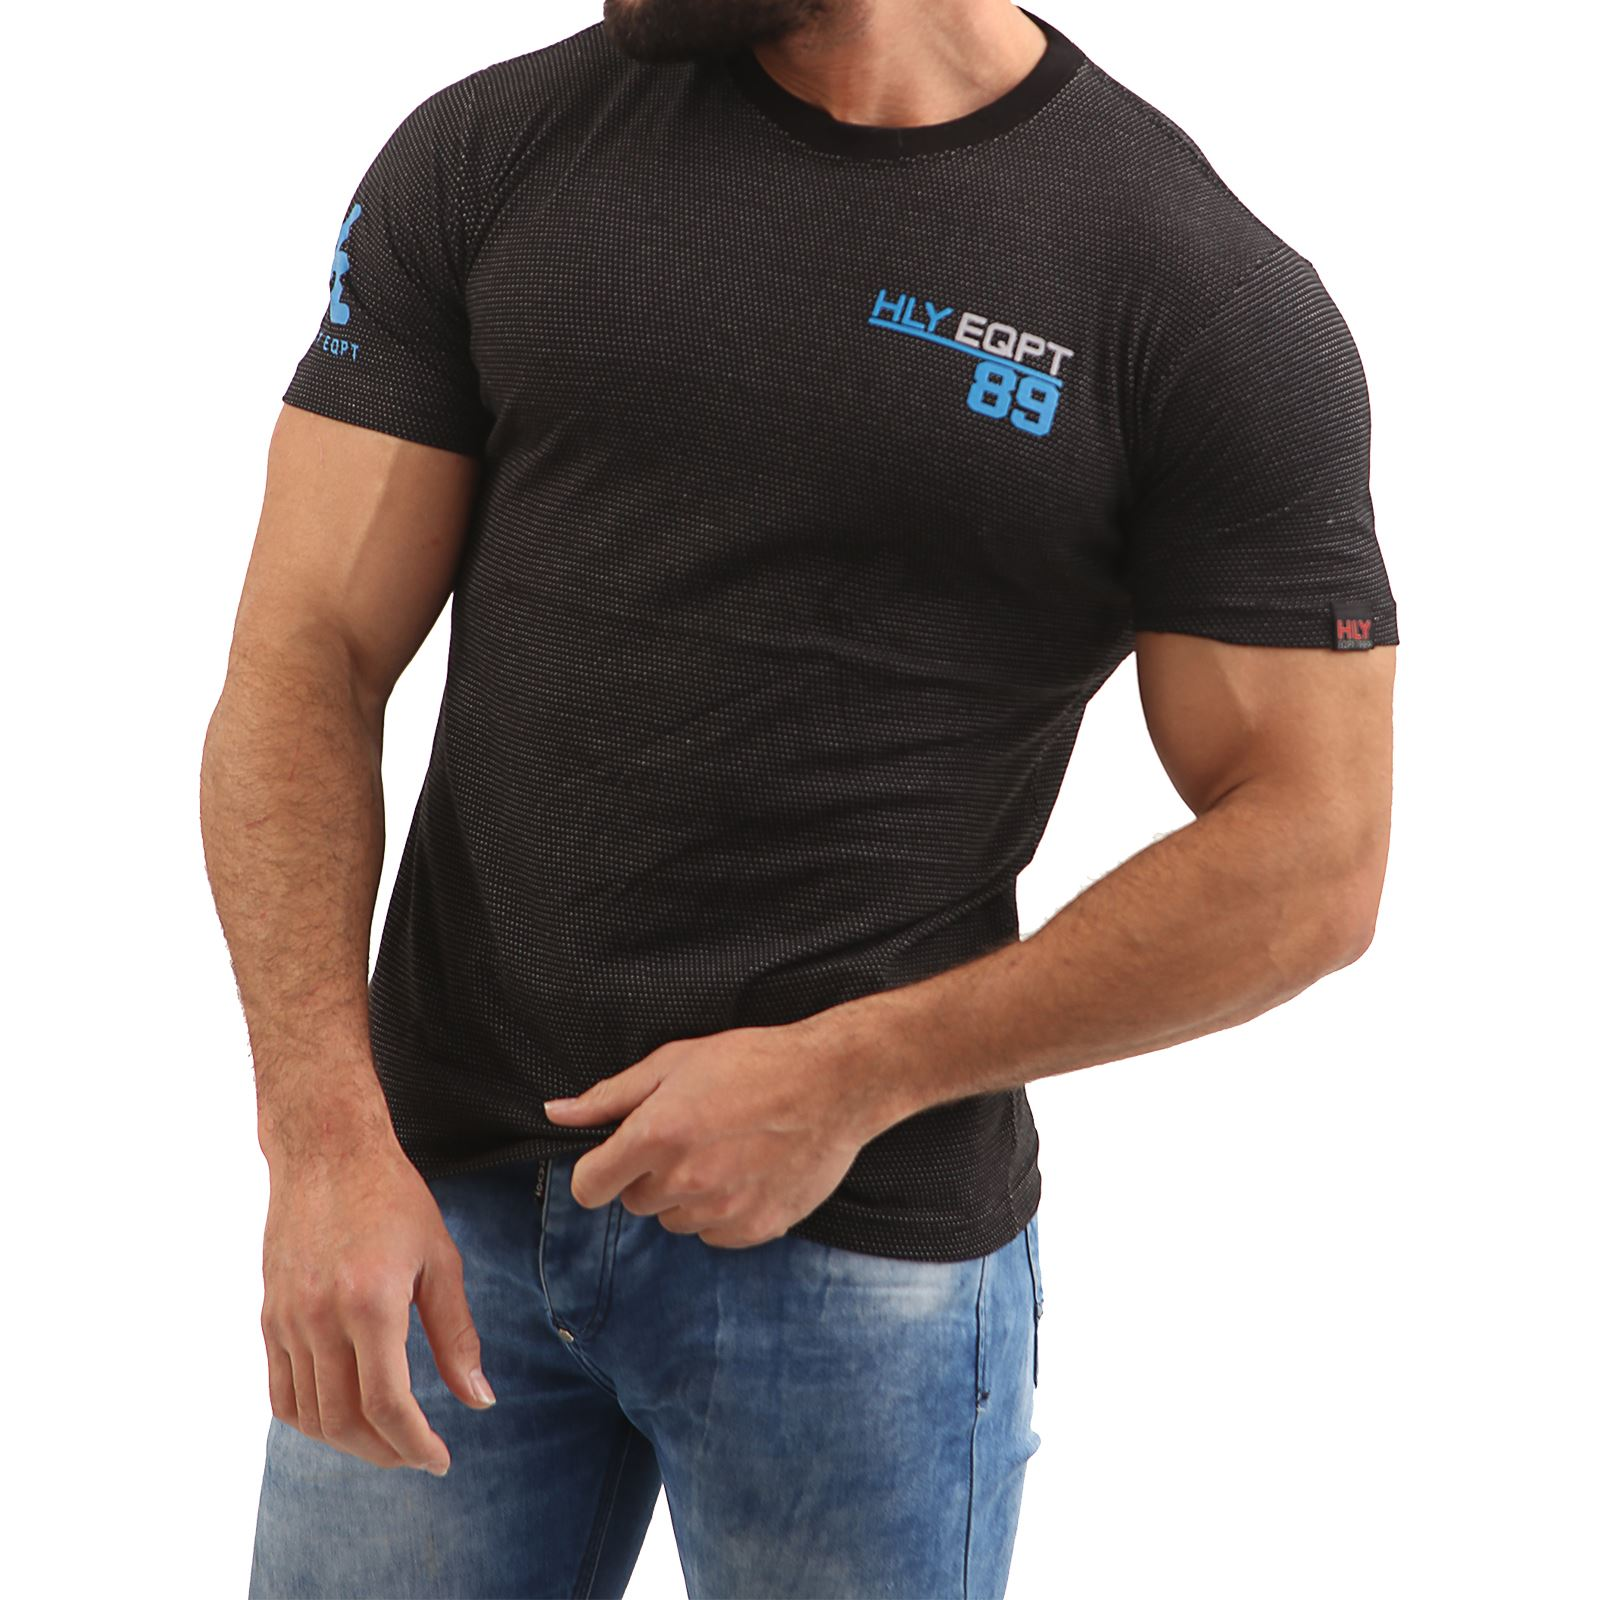 Mens-HLY-EQPT-Printed-T-Shirt-100-Cotton-Gym-Athletic-Training-Tee-Top-Summer thumbnail 21